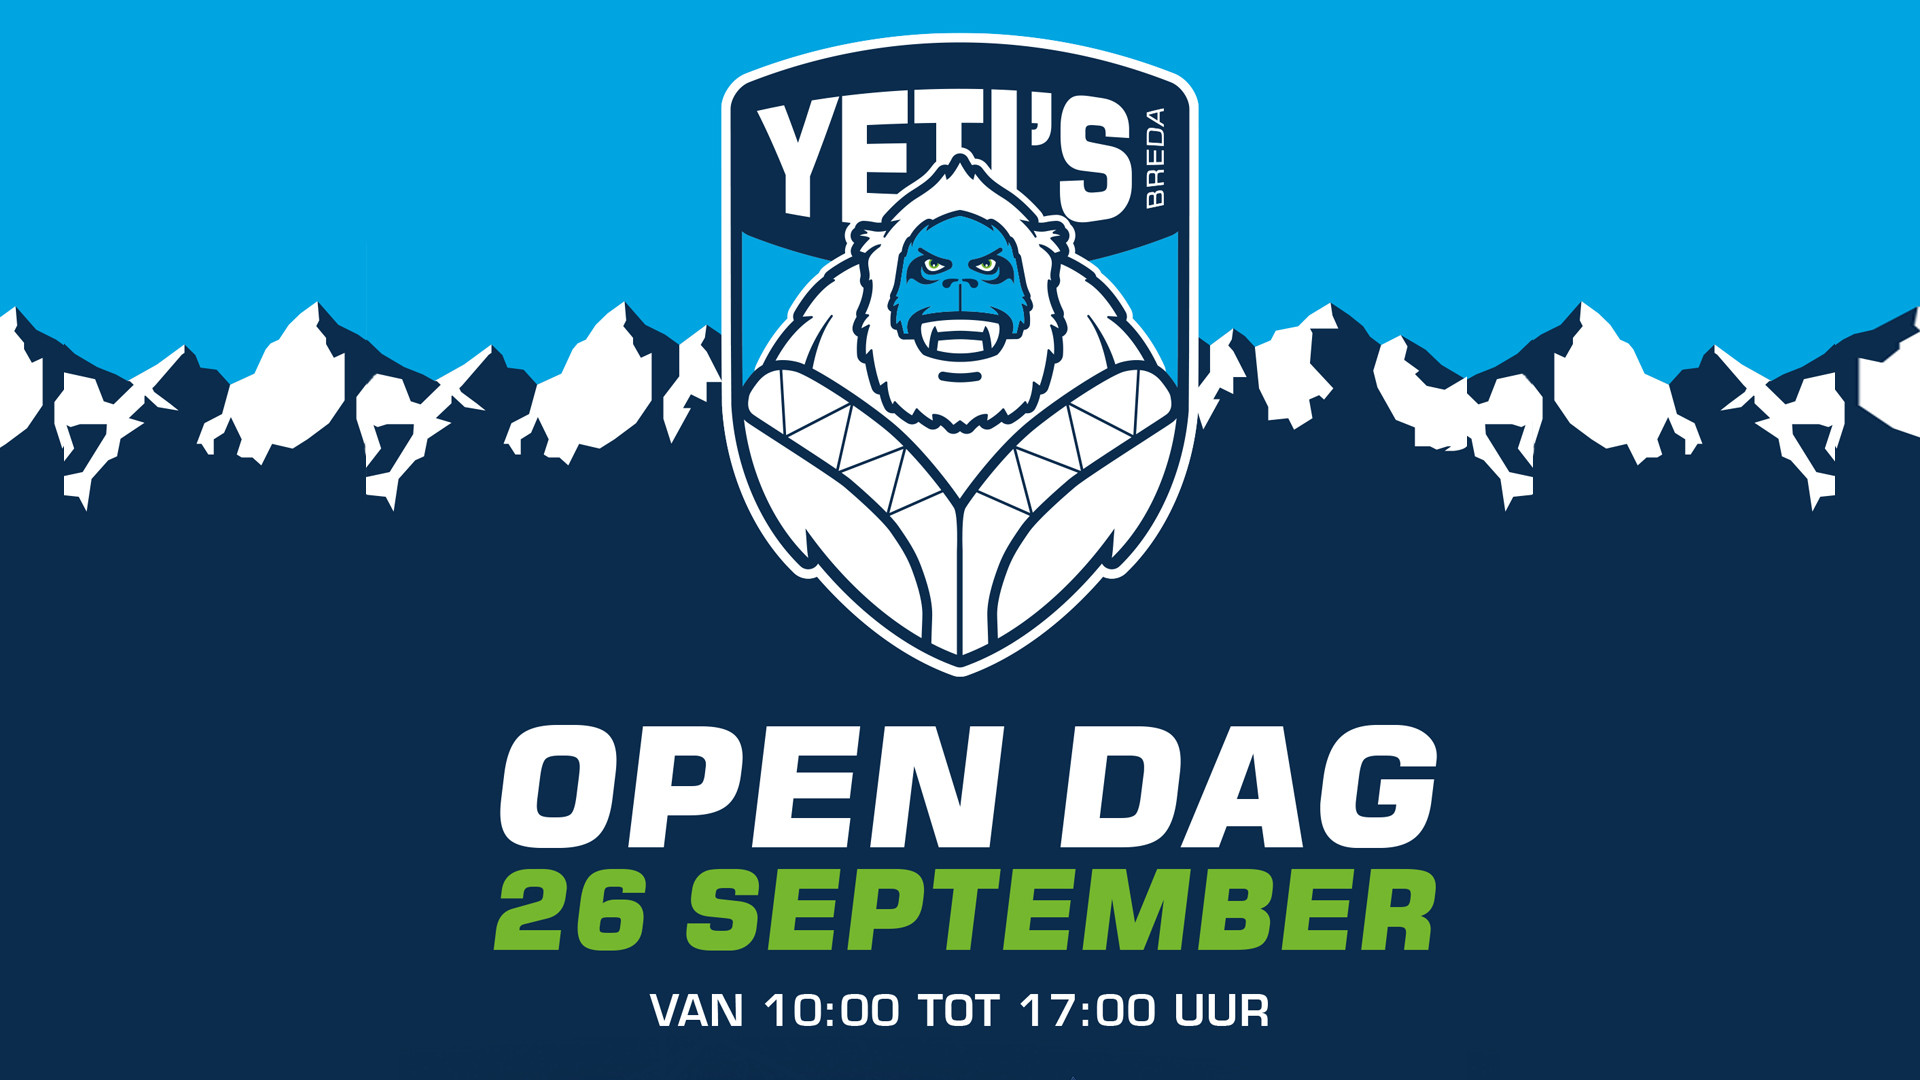 Save the date: Open dag Yeti's